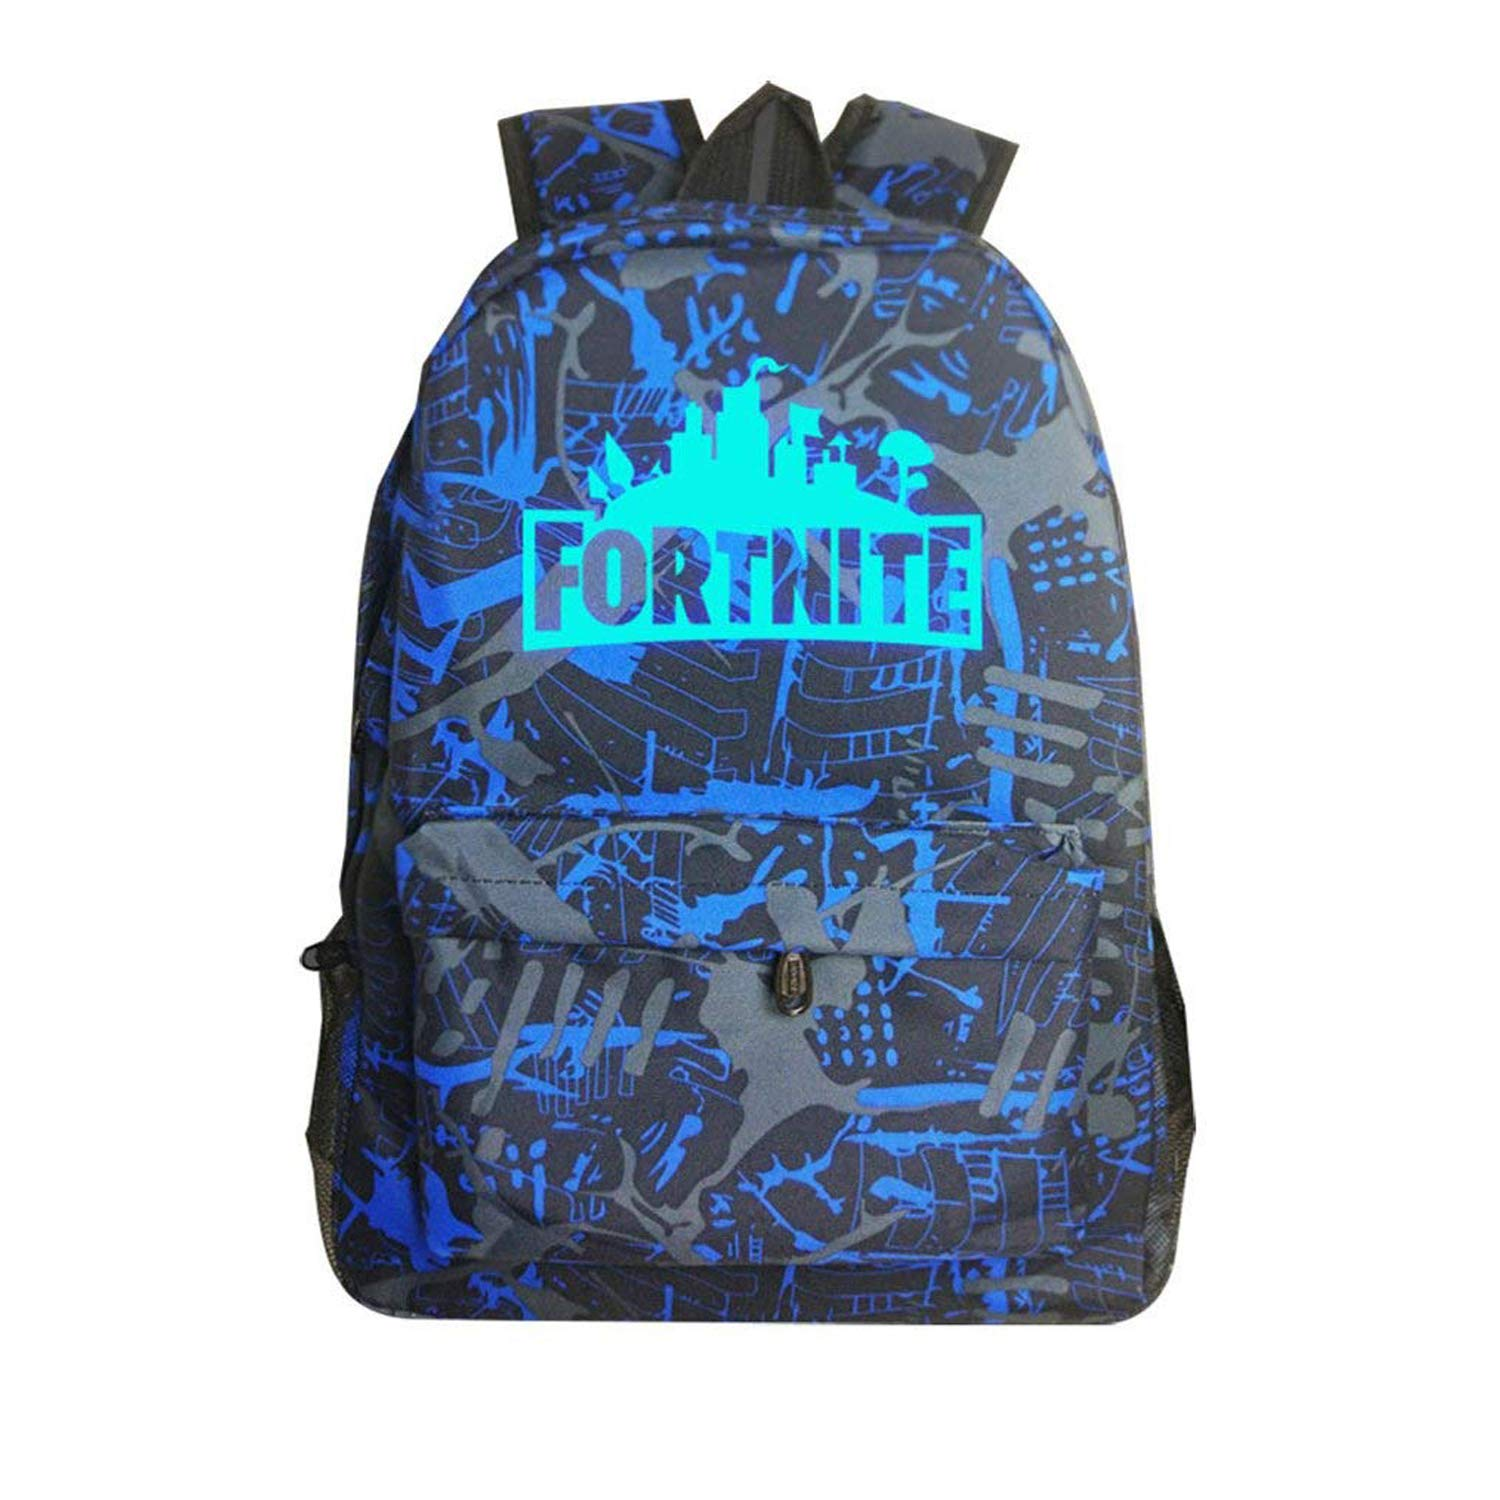 Obvie School Backpack Cool Luminous Schoolbag Unisex Backpack for Teens (Blue) 12